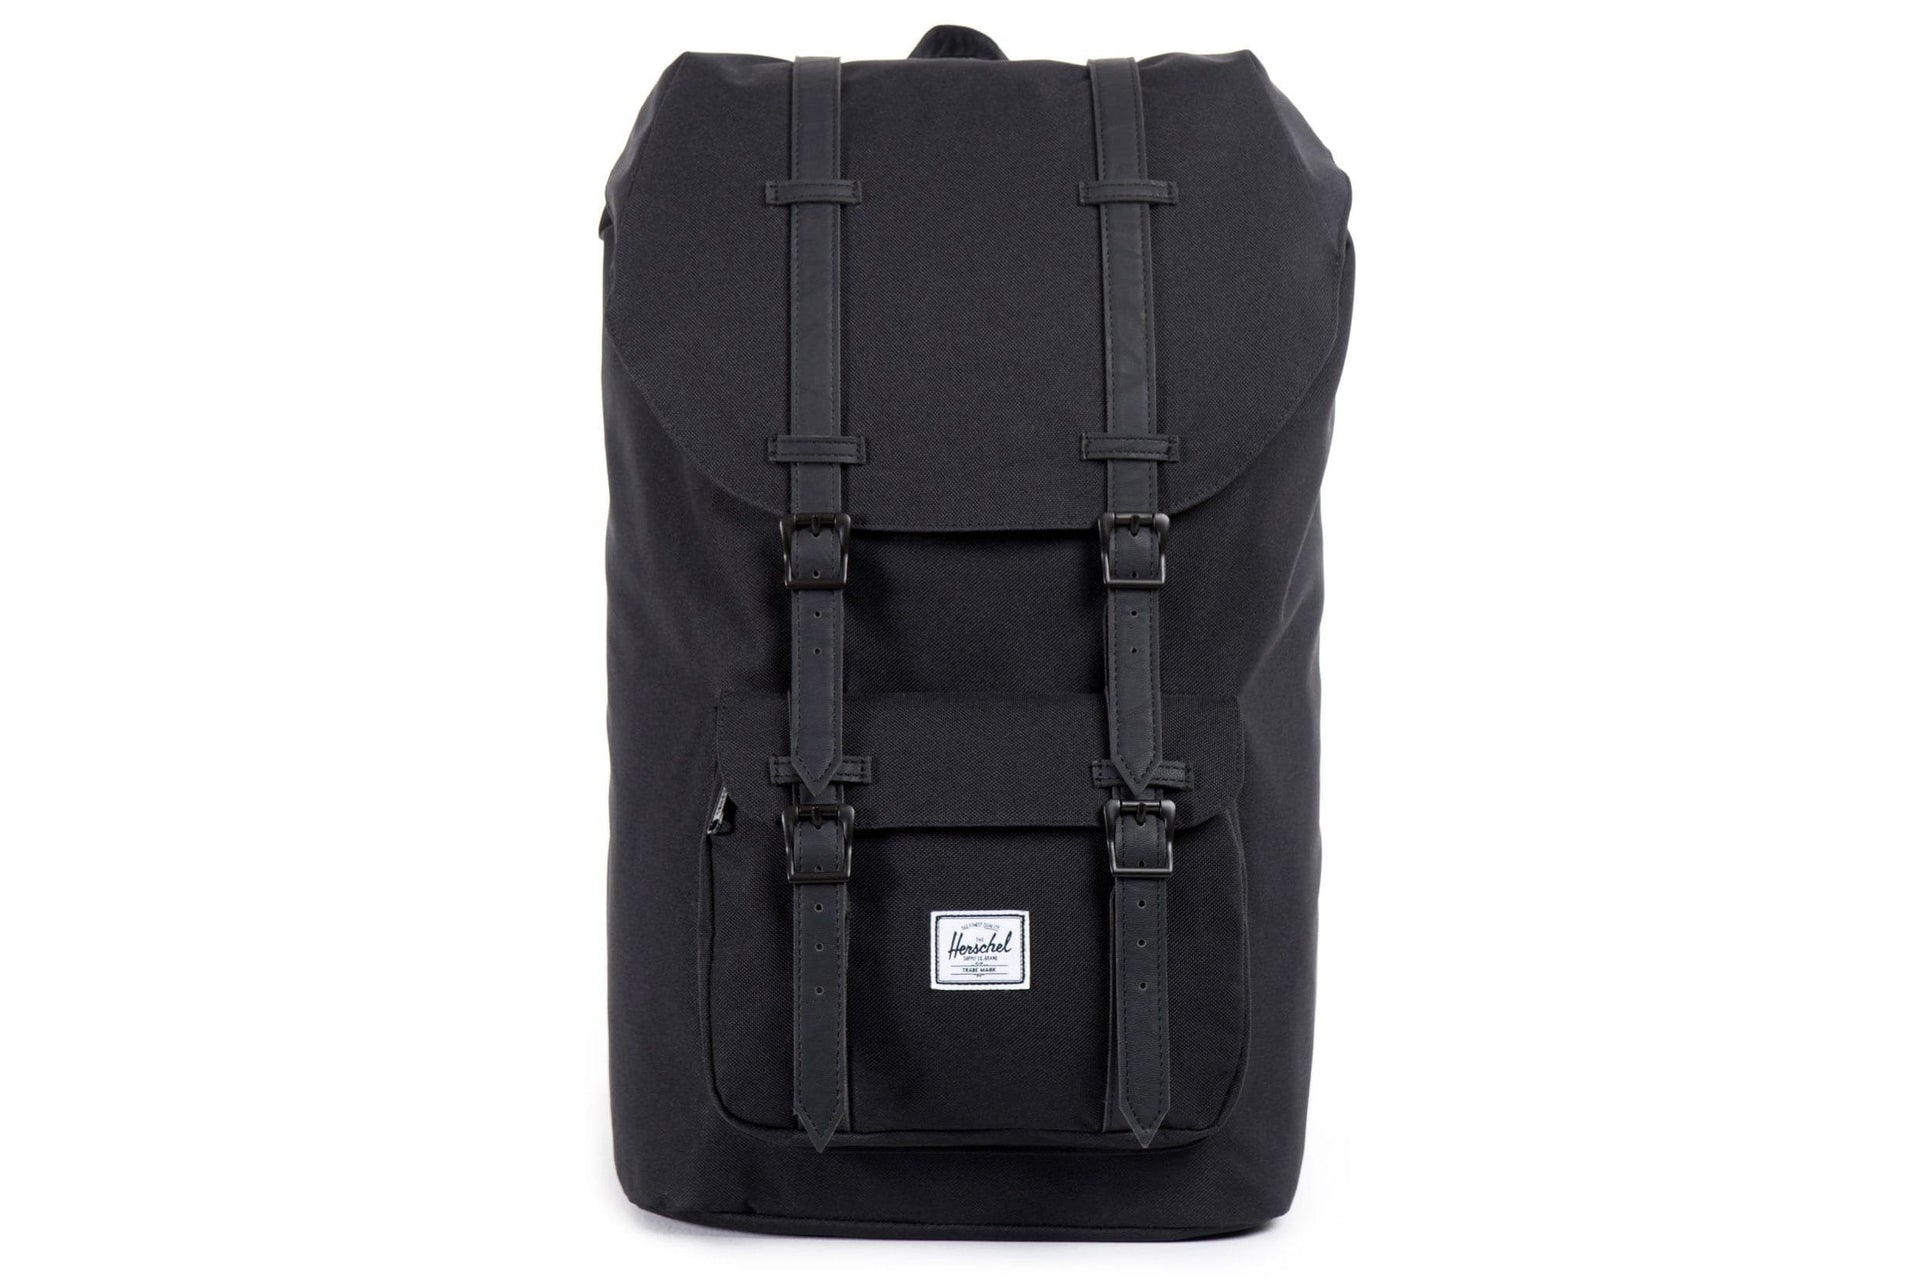 LITTLE AMERICA 600D POLY BAGS HERSCHEL BLACK BLACK SL ONE SIZE